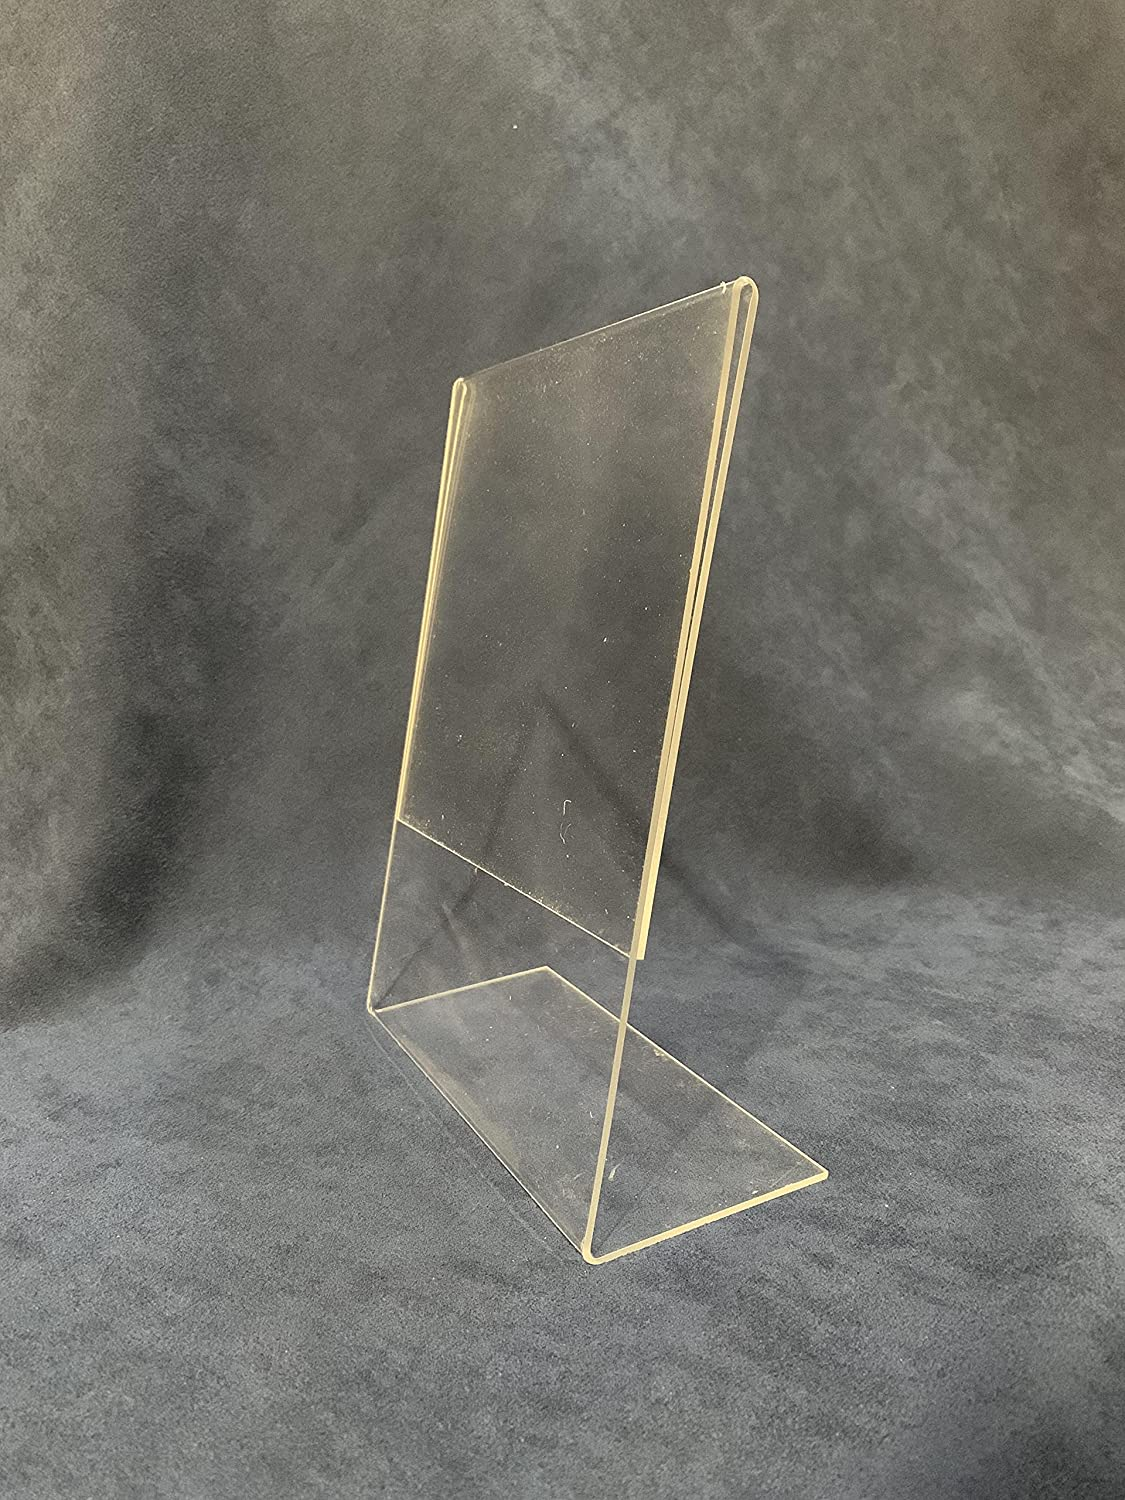 KHM 8X6 Acrylic New Orleans Mall Sign Holder with Plexi Super sale Slant Vertical Back Clear